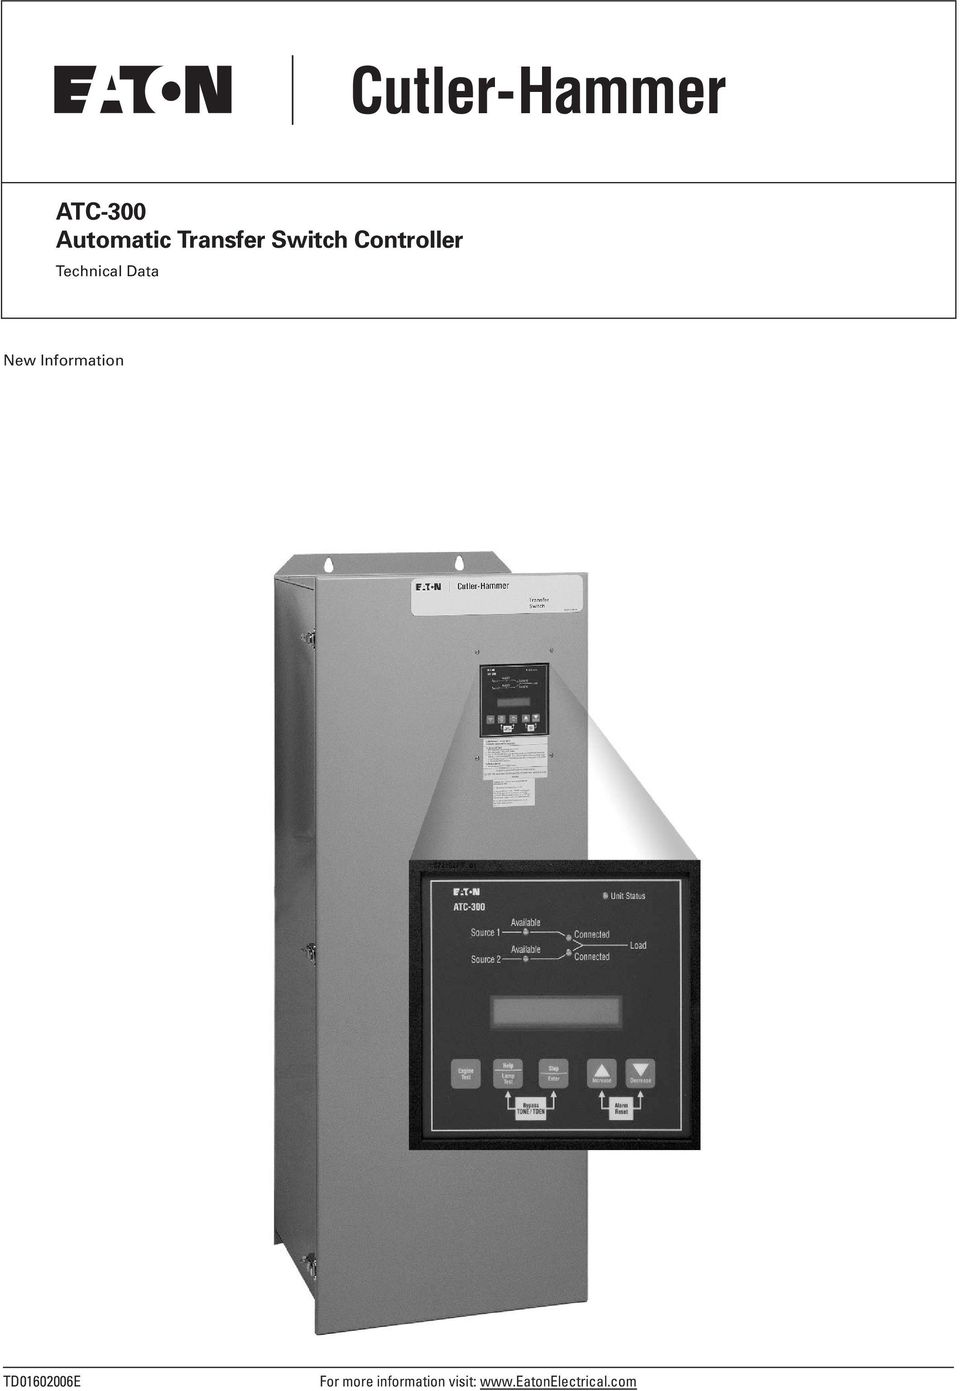 medium resolution of 2 technical data page 2 effective may 2004 atc 300 introduction the cutler hammer atc 300 from eaton s electrical business is a comprehensive